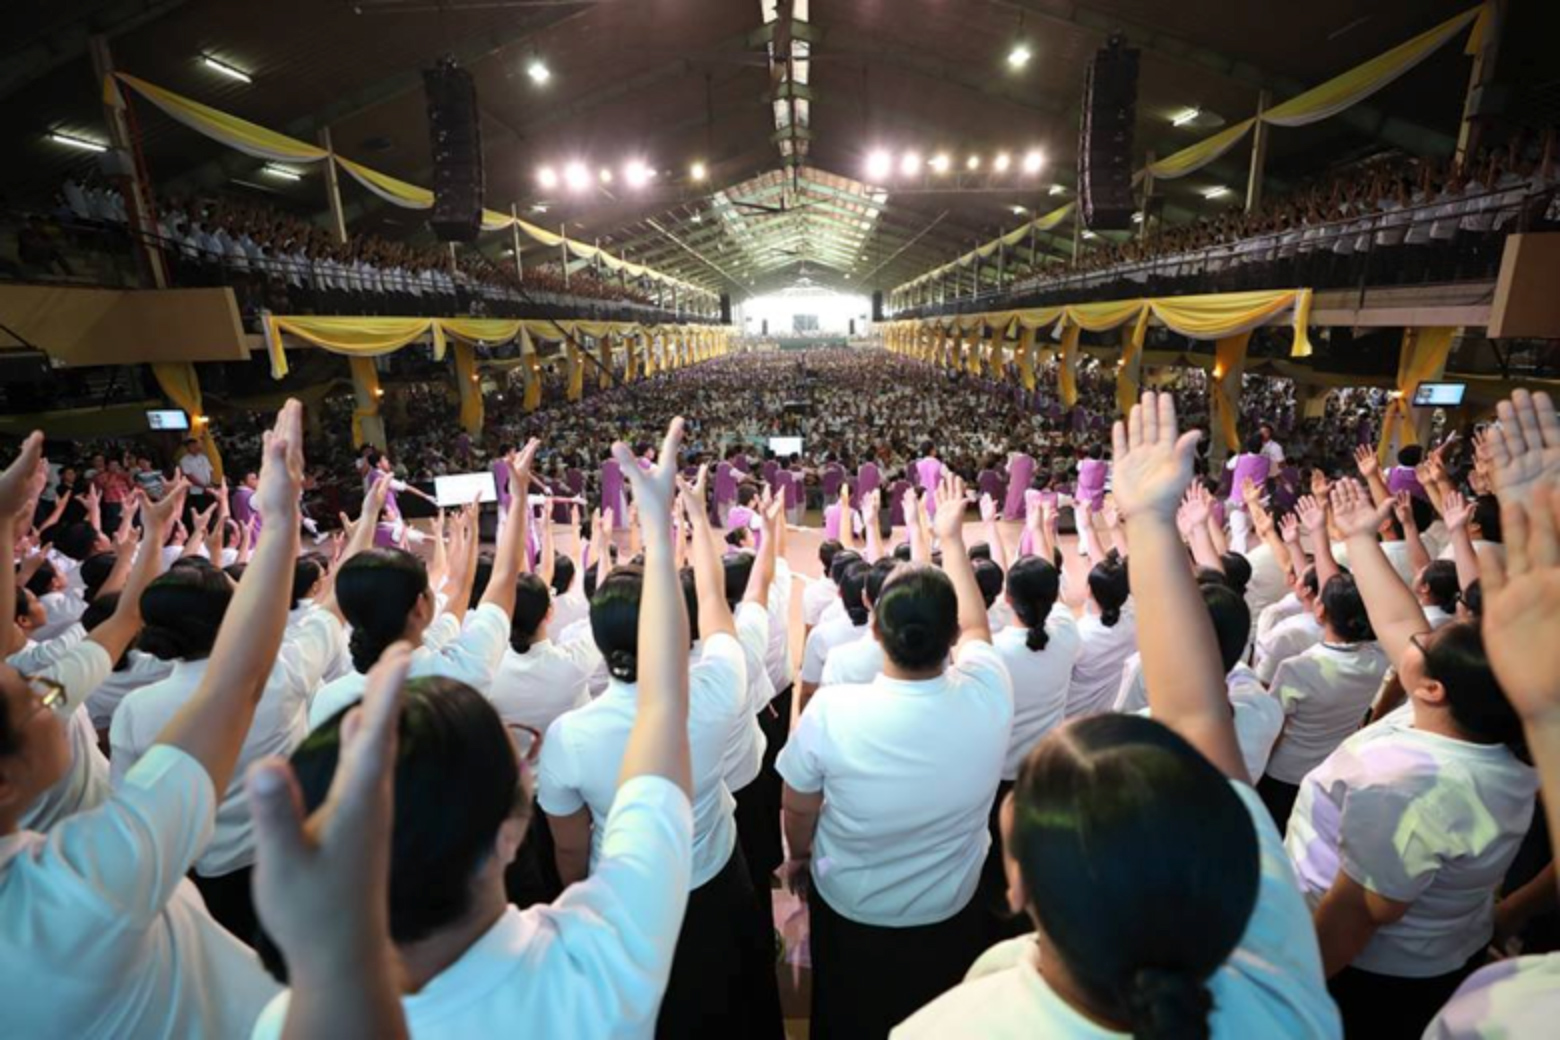 A New Year Dawns: MCGI to Welcome Year 5778 with a Special Gathering